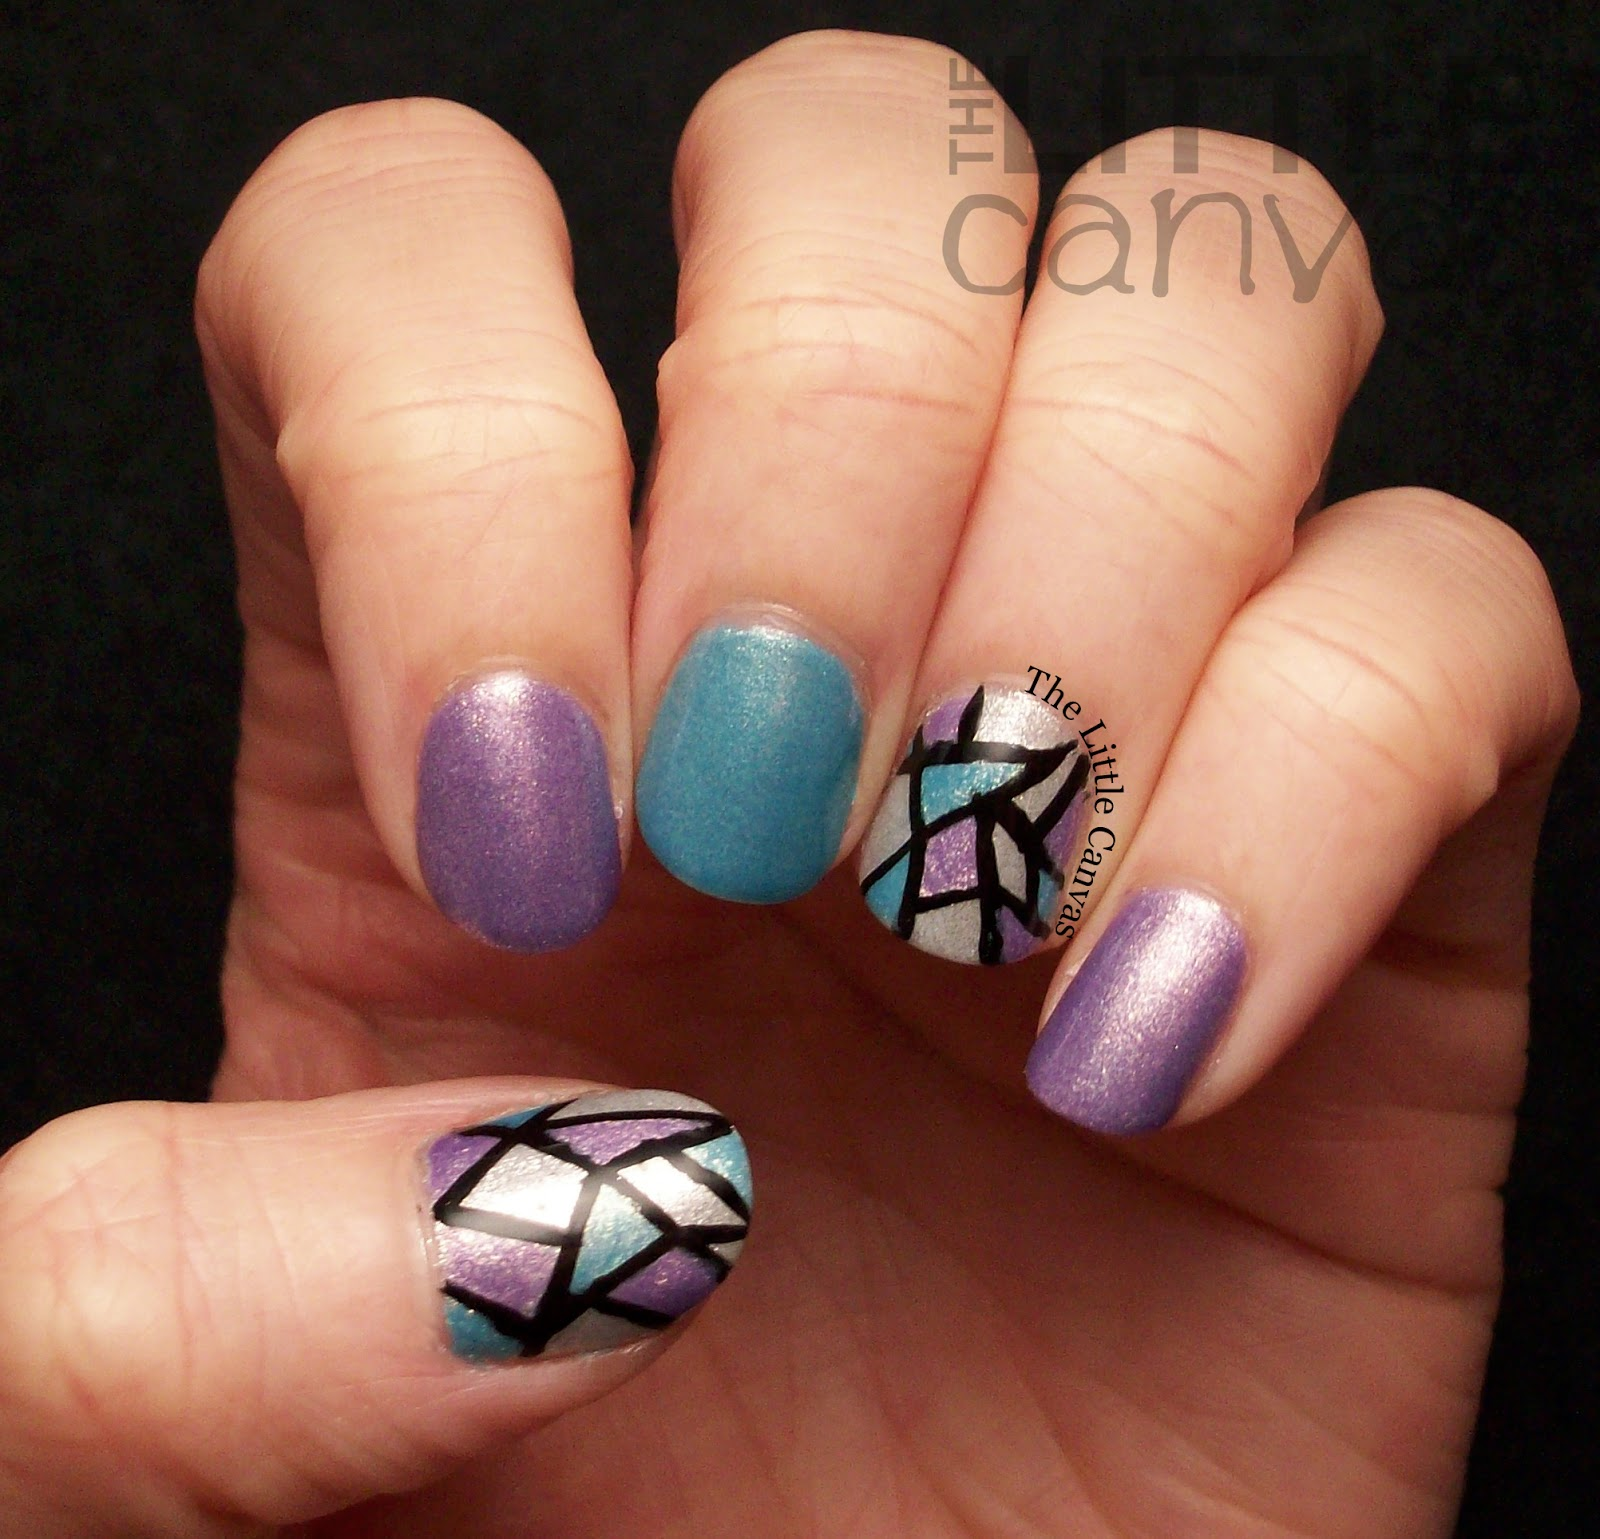 Zoya Hudson, Rebel, and Seraphina Nail Art - The Little Canvas